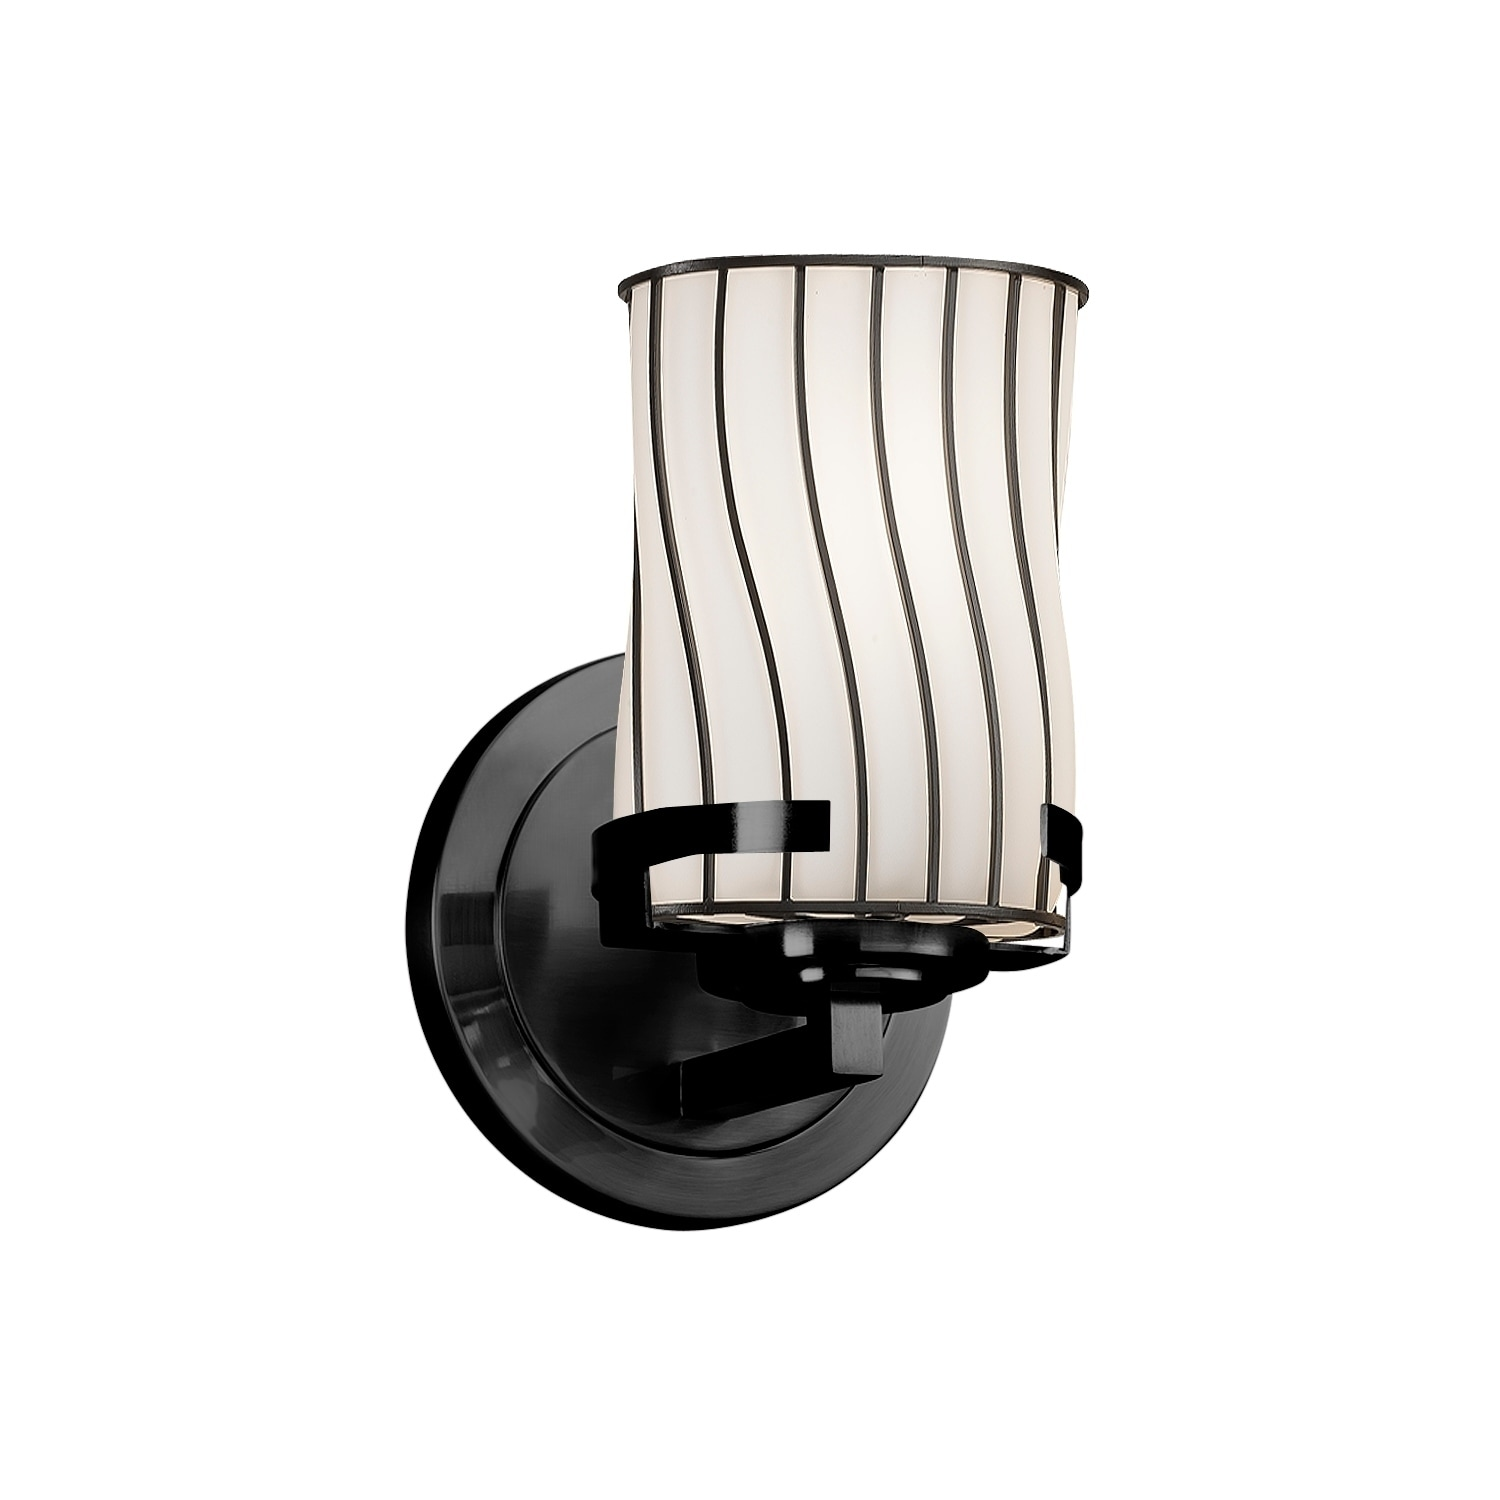 Fusion LED Cylinder with Flat Rim Artisan Glass Shade in Opal Embark 1-Light Outdoor Wall Sconce Matte Black Finish